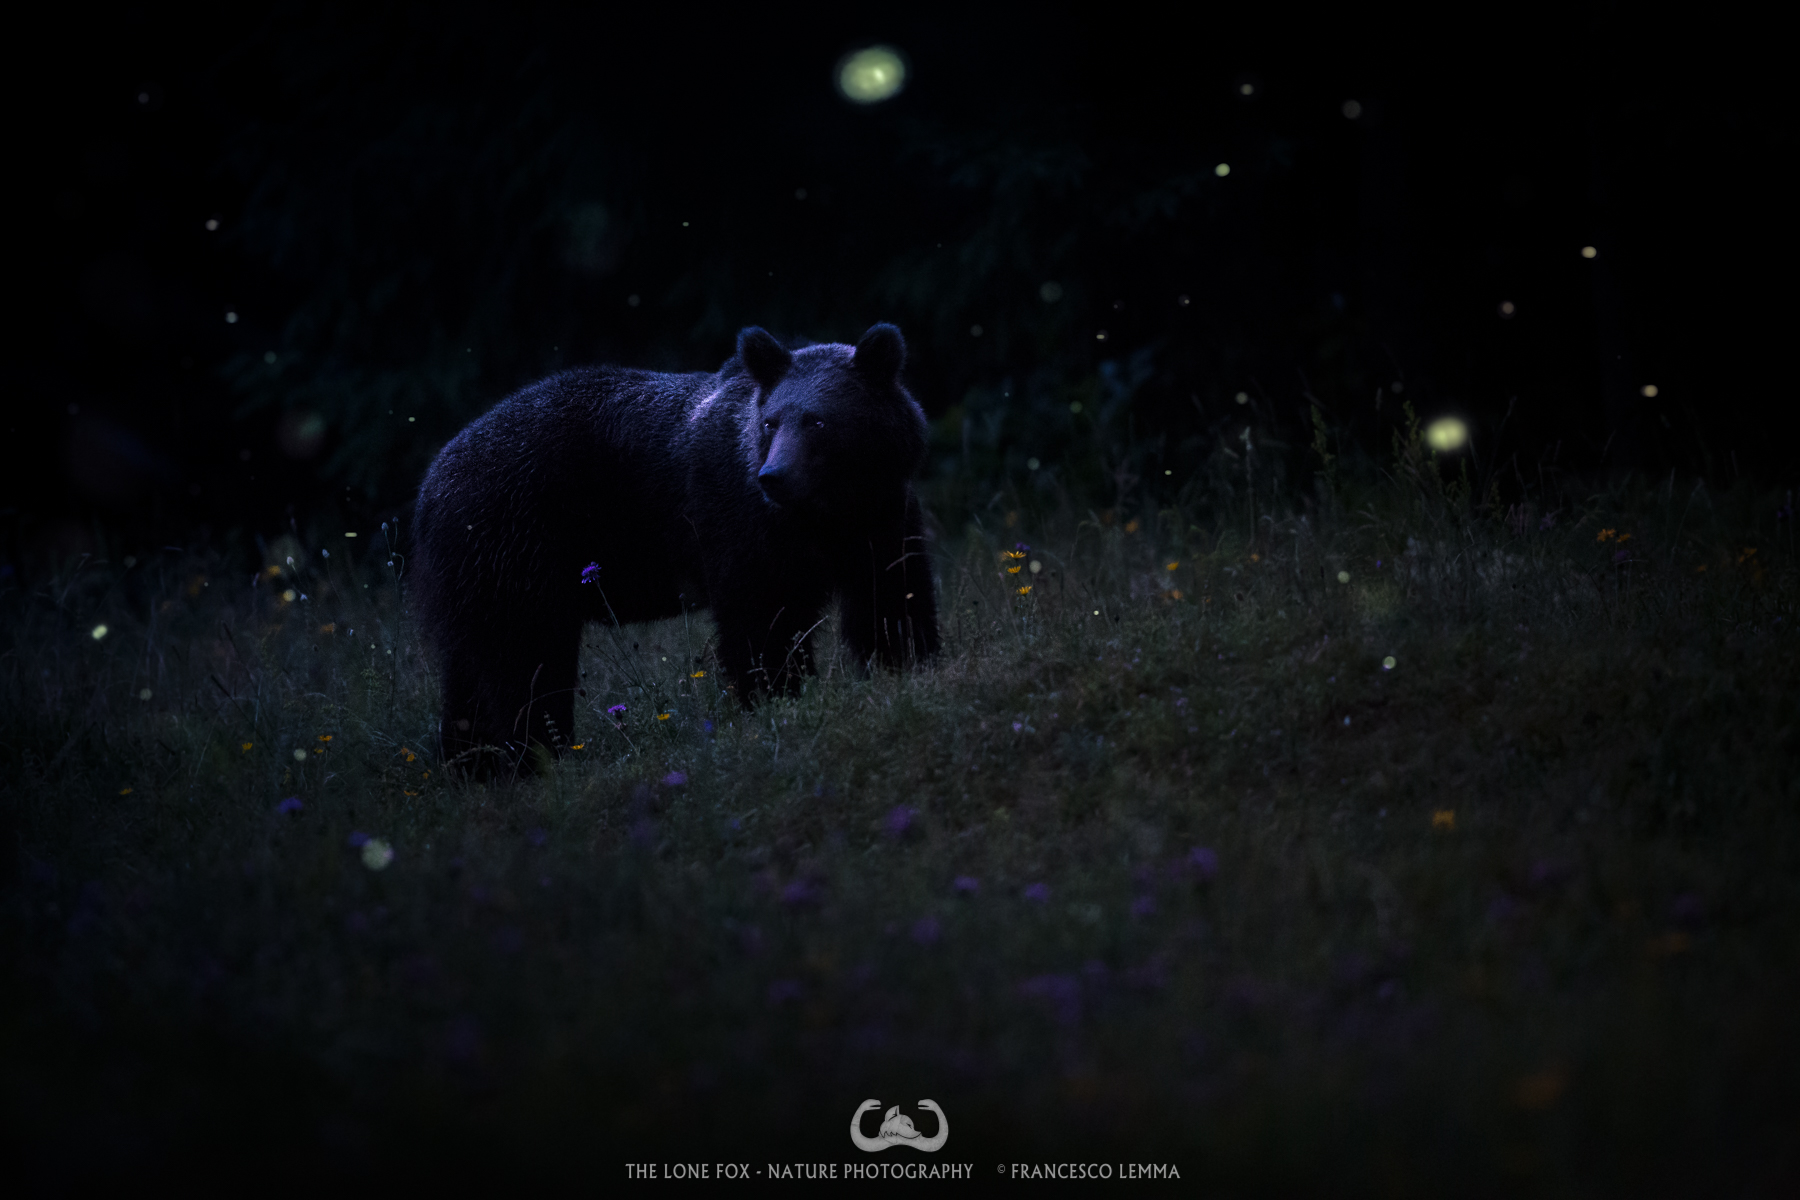 The Bear and the fireflies...